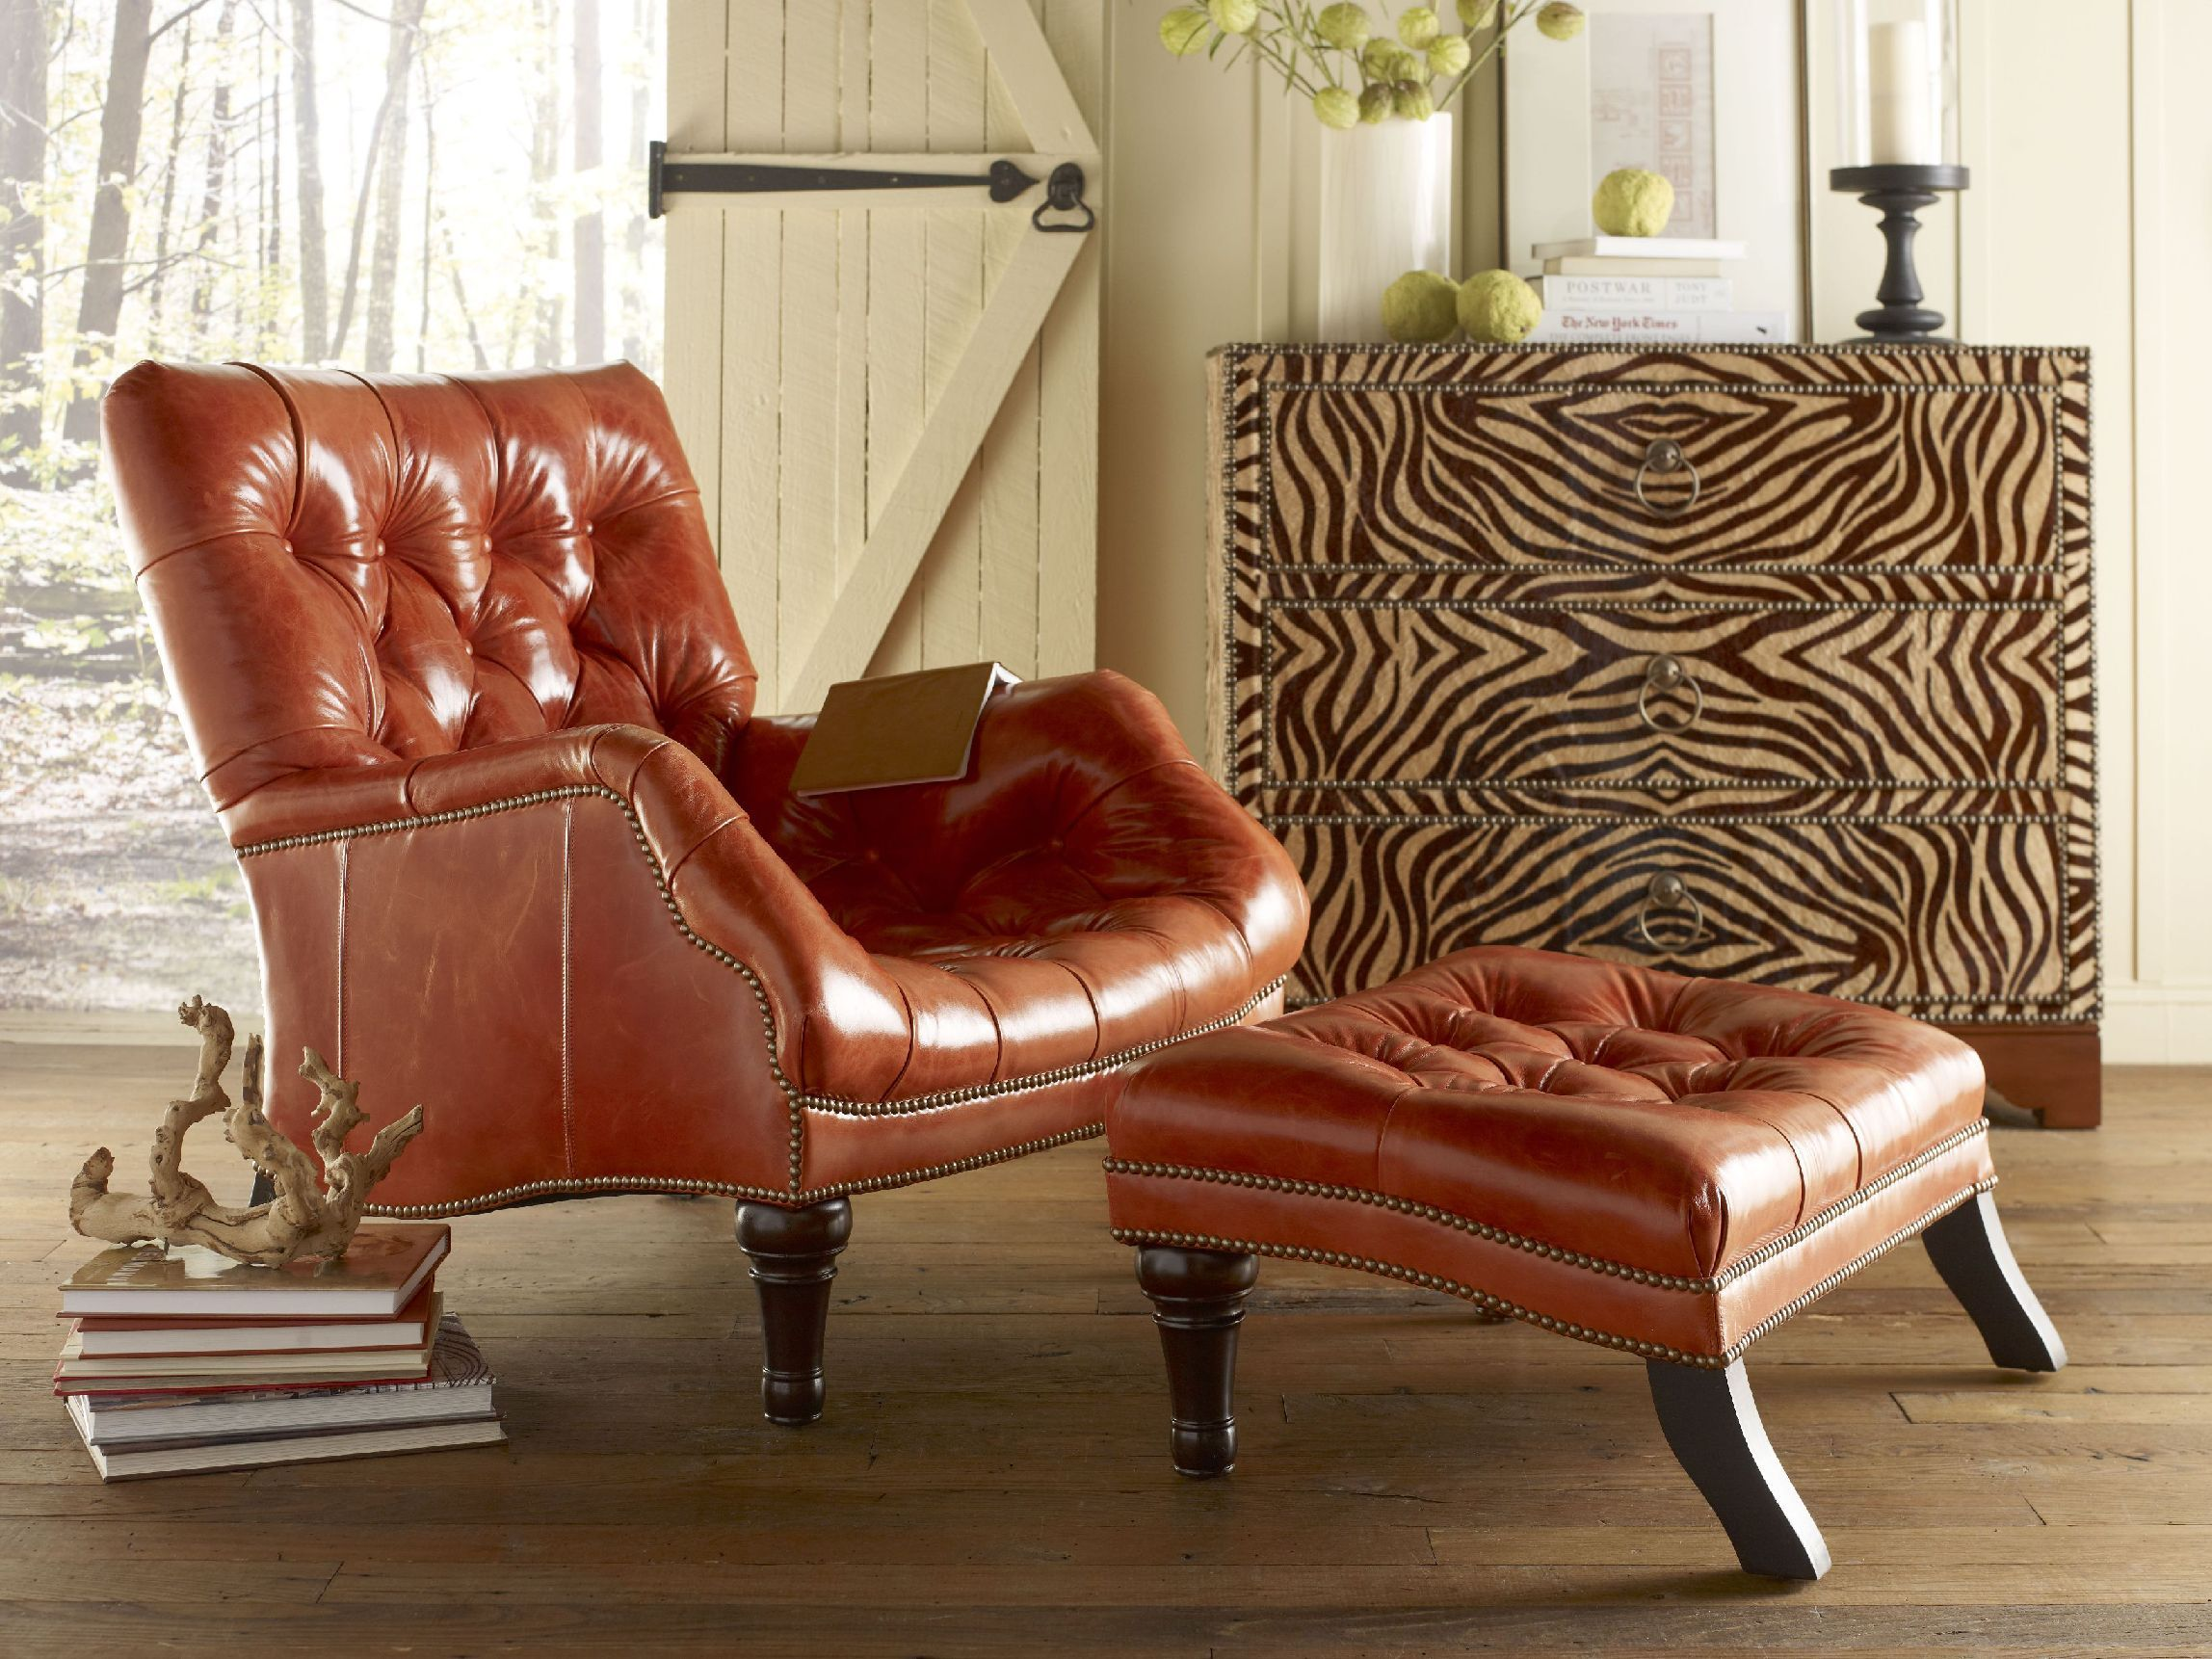 Chaddock Living Room Sleepy Hollow Chair (Leather) L 0278 1   Chaddock